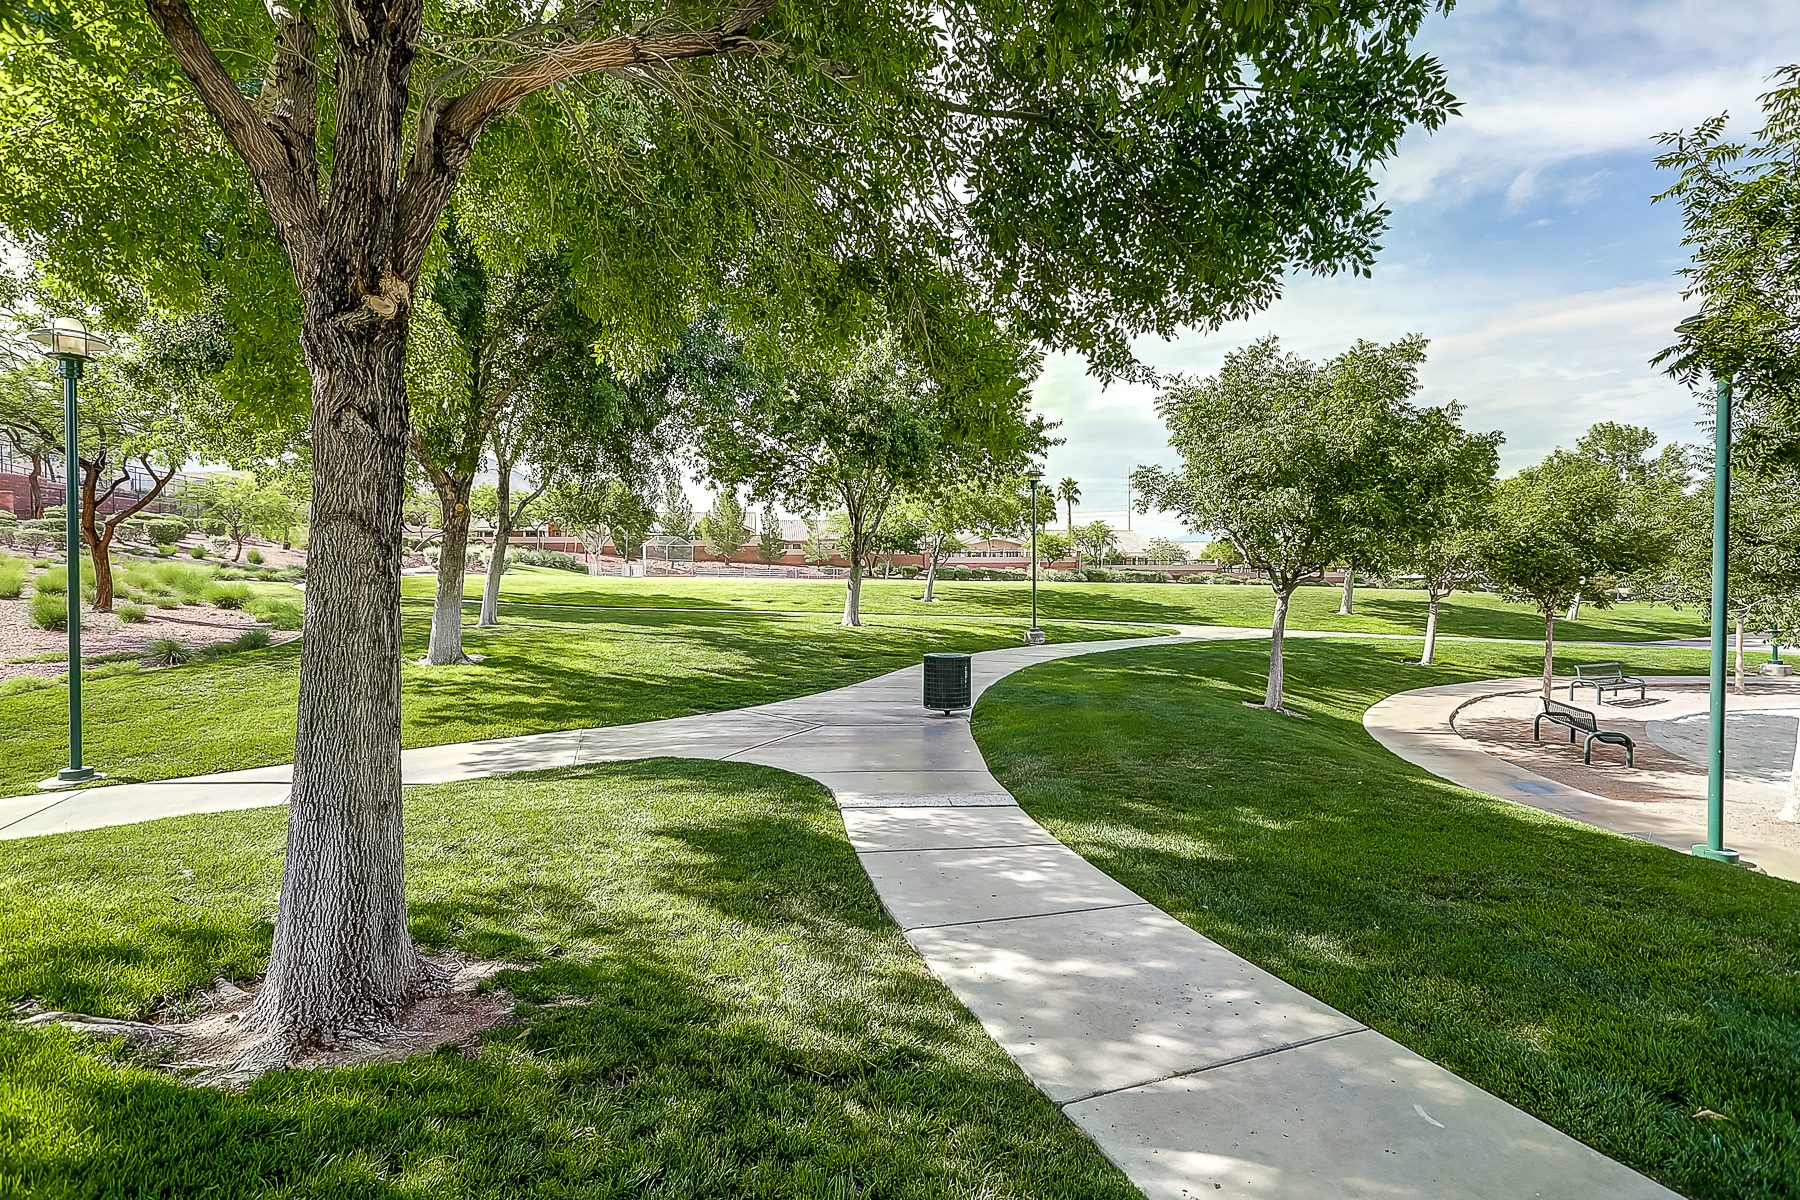 11 summerlin community parks